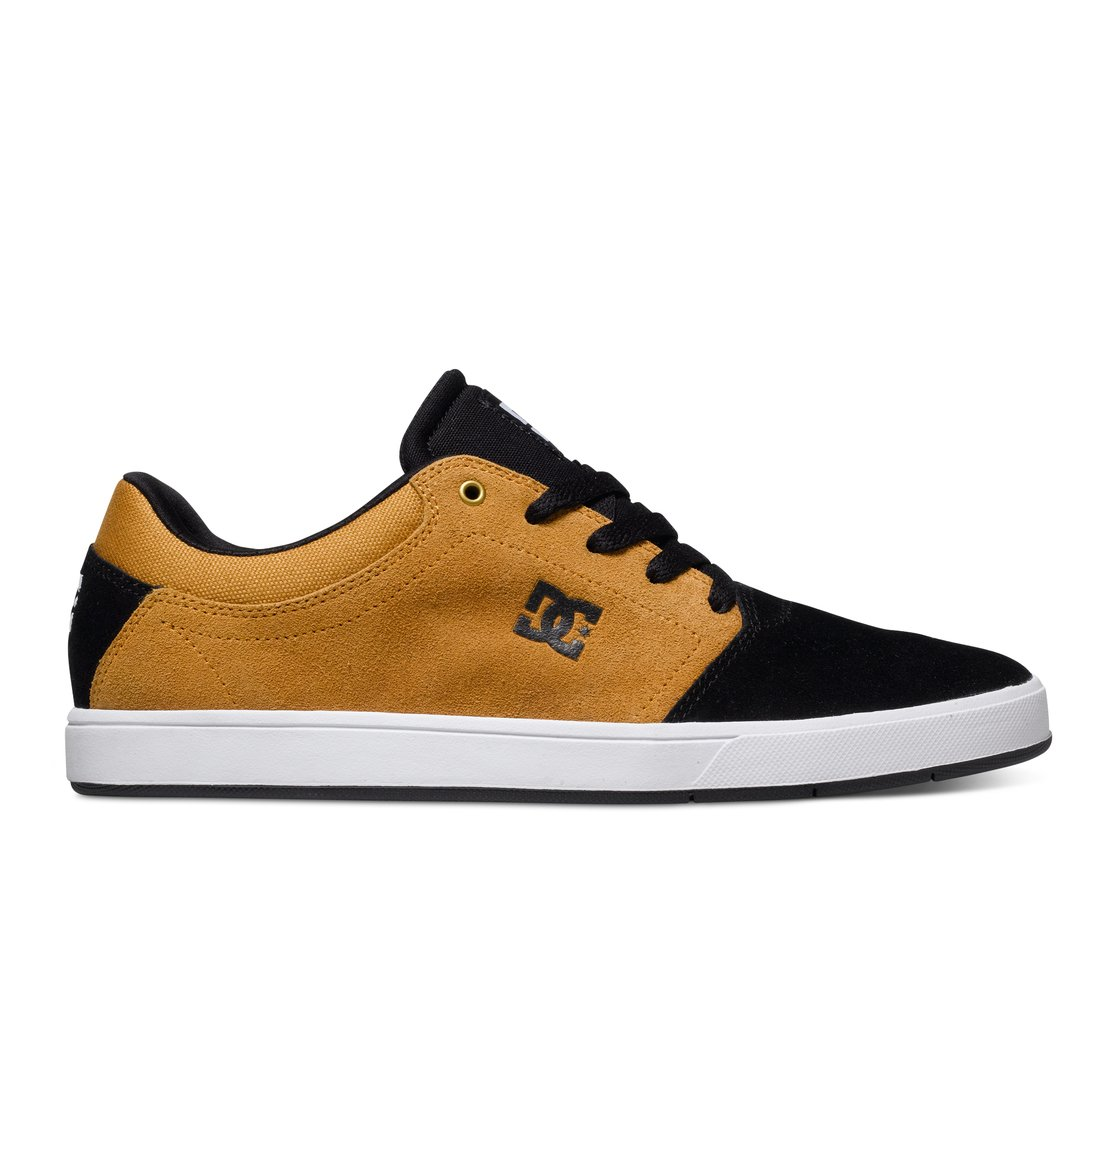 Crisis - Dcshoes������ ������� ���� Crisis �� DC Shoes. <br>��������������: ���� �� ����� ��� ������, ������� ��������������� ���, �������� ����������� �������, ������� ���� � ������� � ������ ������������, ������� ���������� ���������, ����������� ����������, ������� ����������� Cupsole, ��������� ������� ���������� ������� DC Pill Pattern. <br>������: ����: ���� / ���������: �������� / �������: ������.<br>